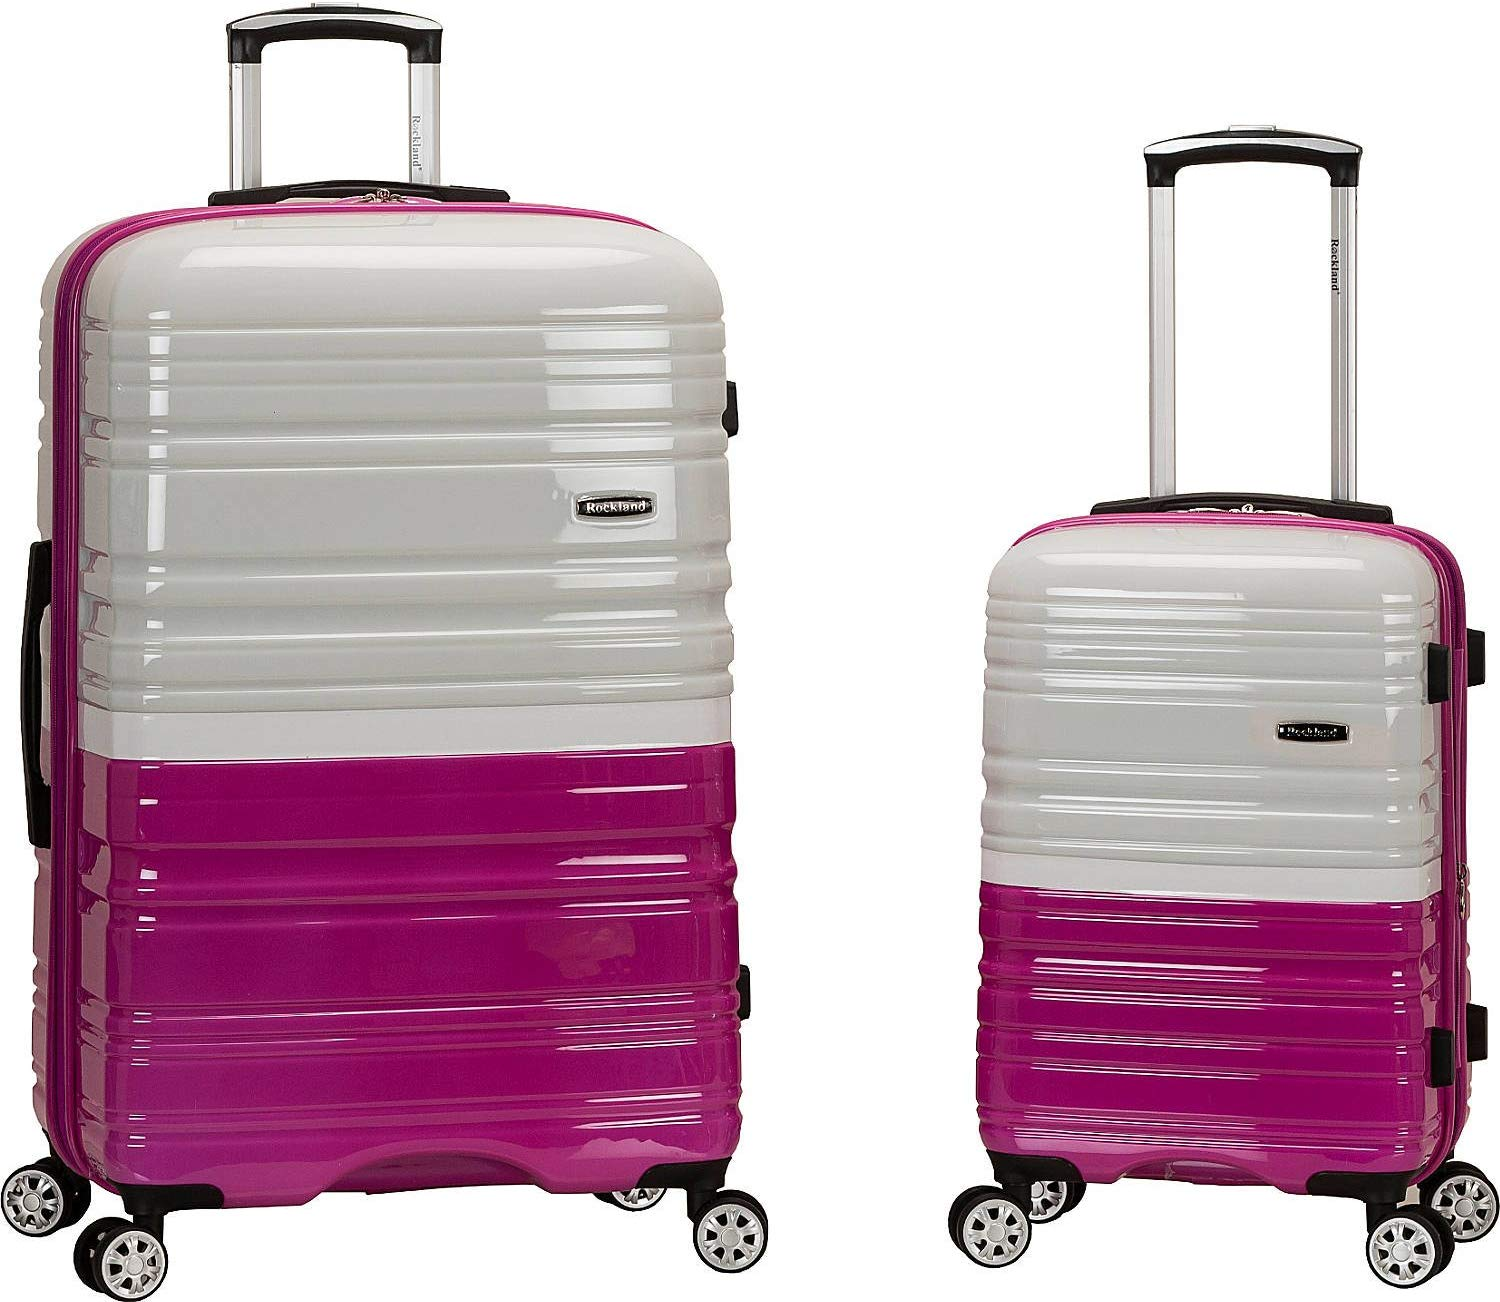 Rpckland Brand Luggage Review